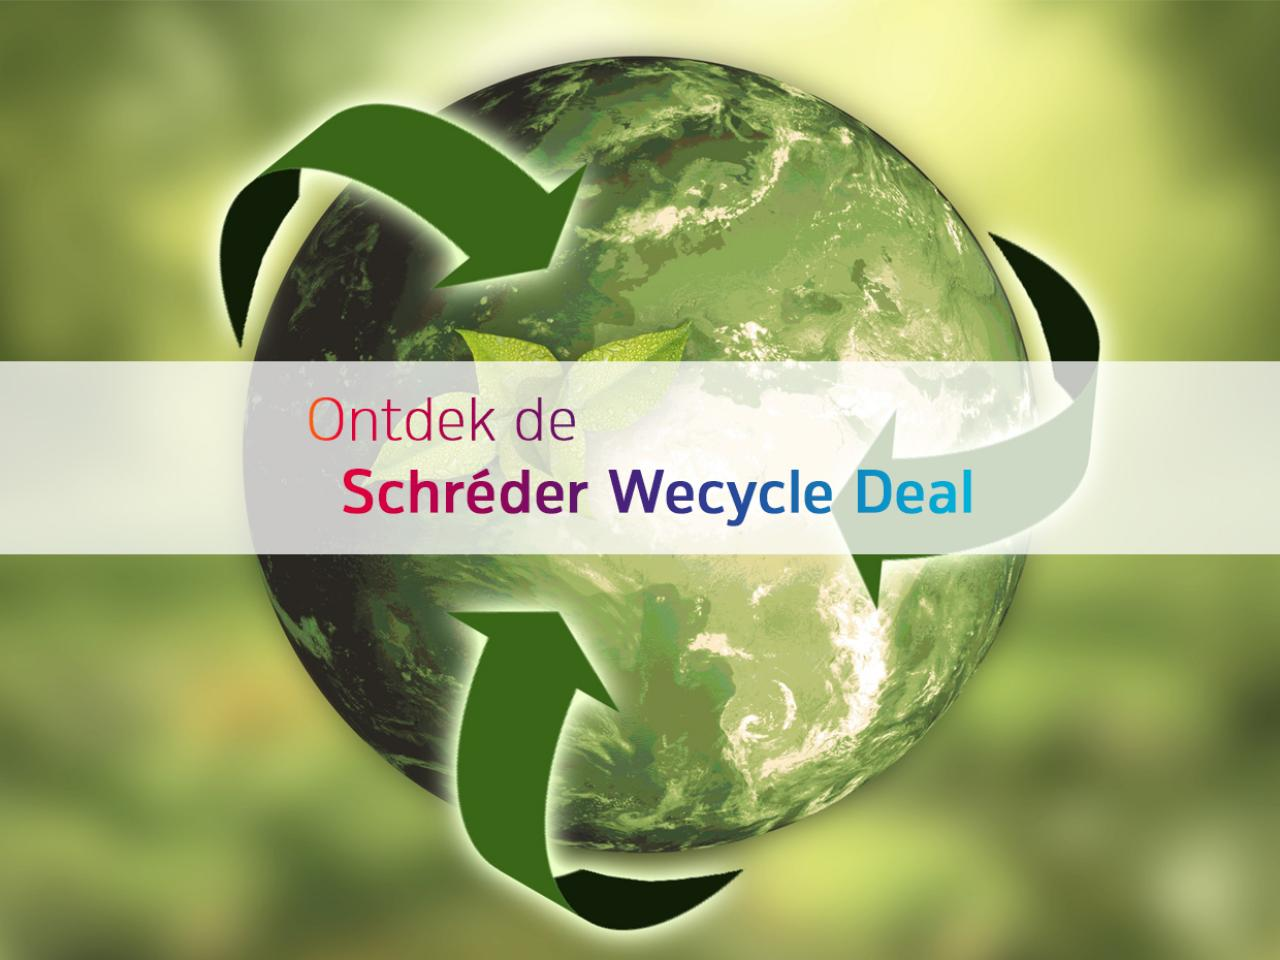 Schréder Wecycle Deal